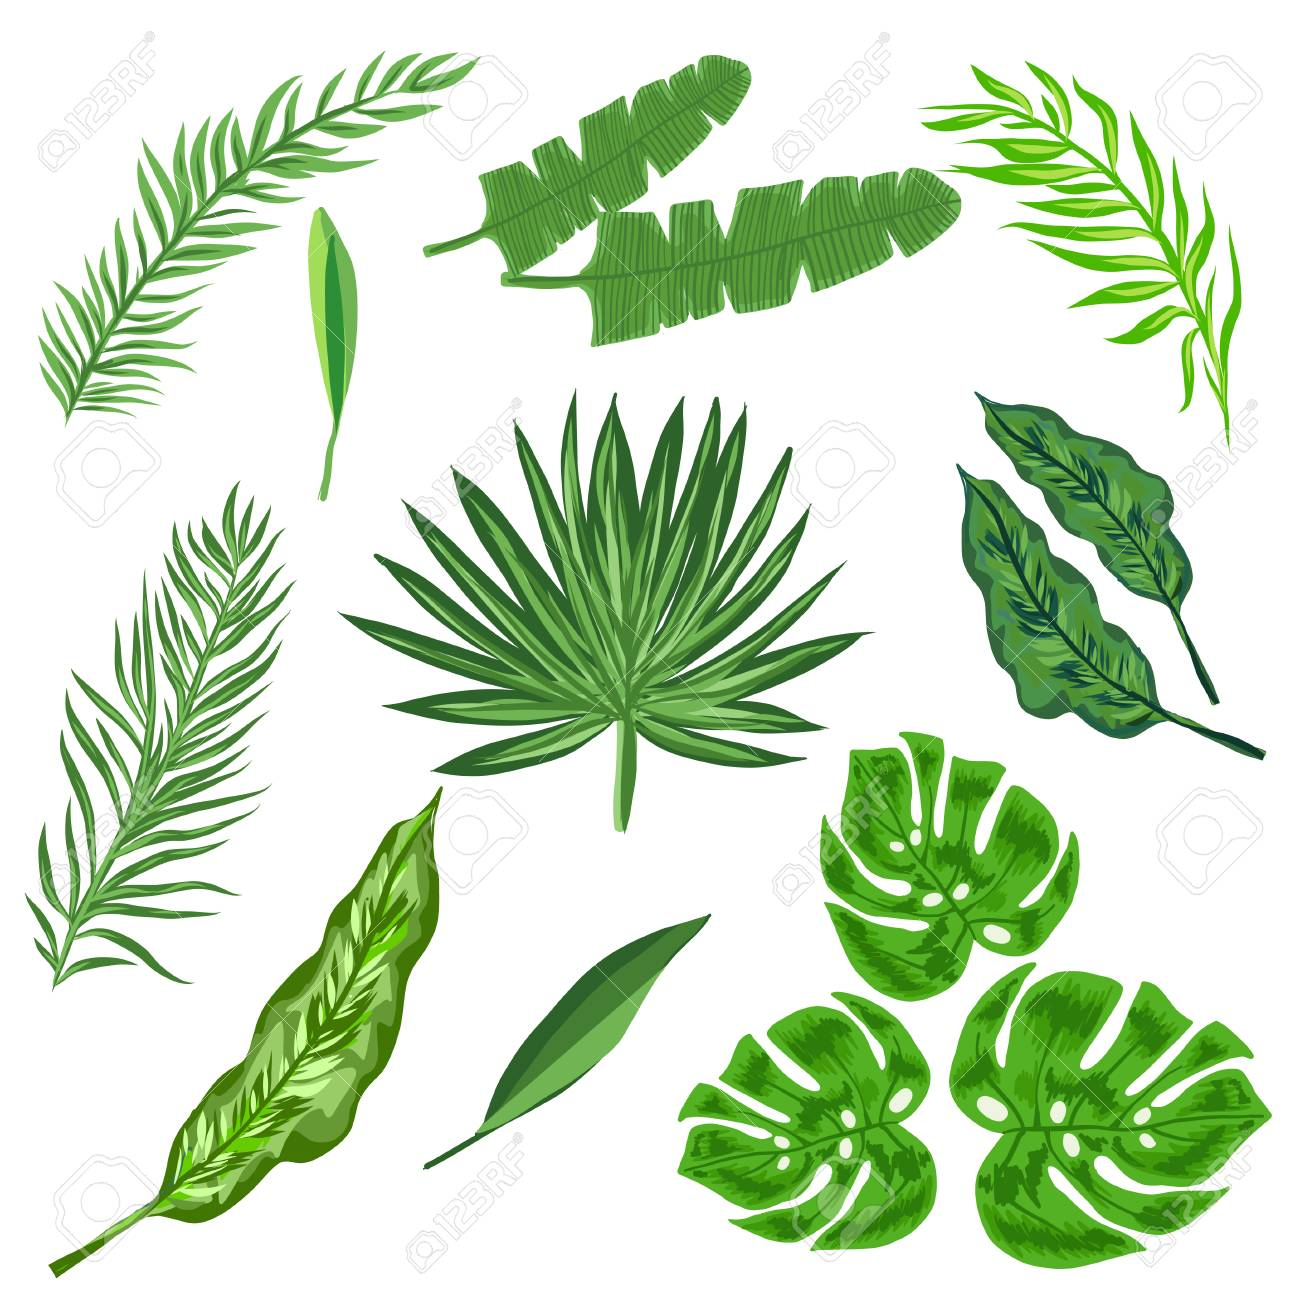 Different Tropical Leaves Set Vector Palm Leaves On White Background Royalty Free Cliparts Vectors And Stock Illustration Image 99303298 Discover 24 types of tropical foliage house plants for your home and workplace. different tropical leaves set vector palm leaves on white background